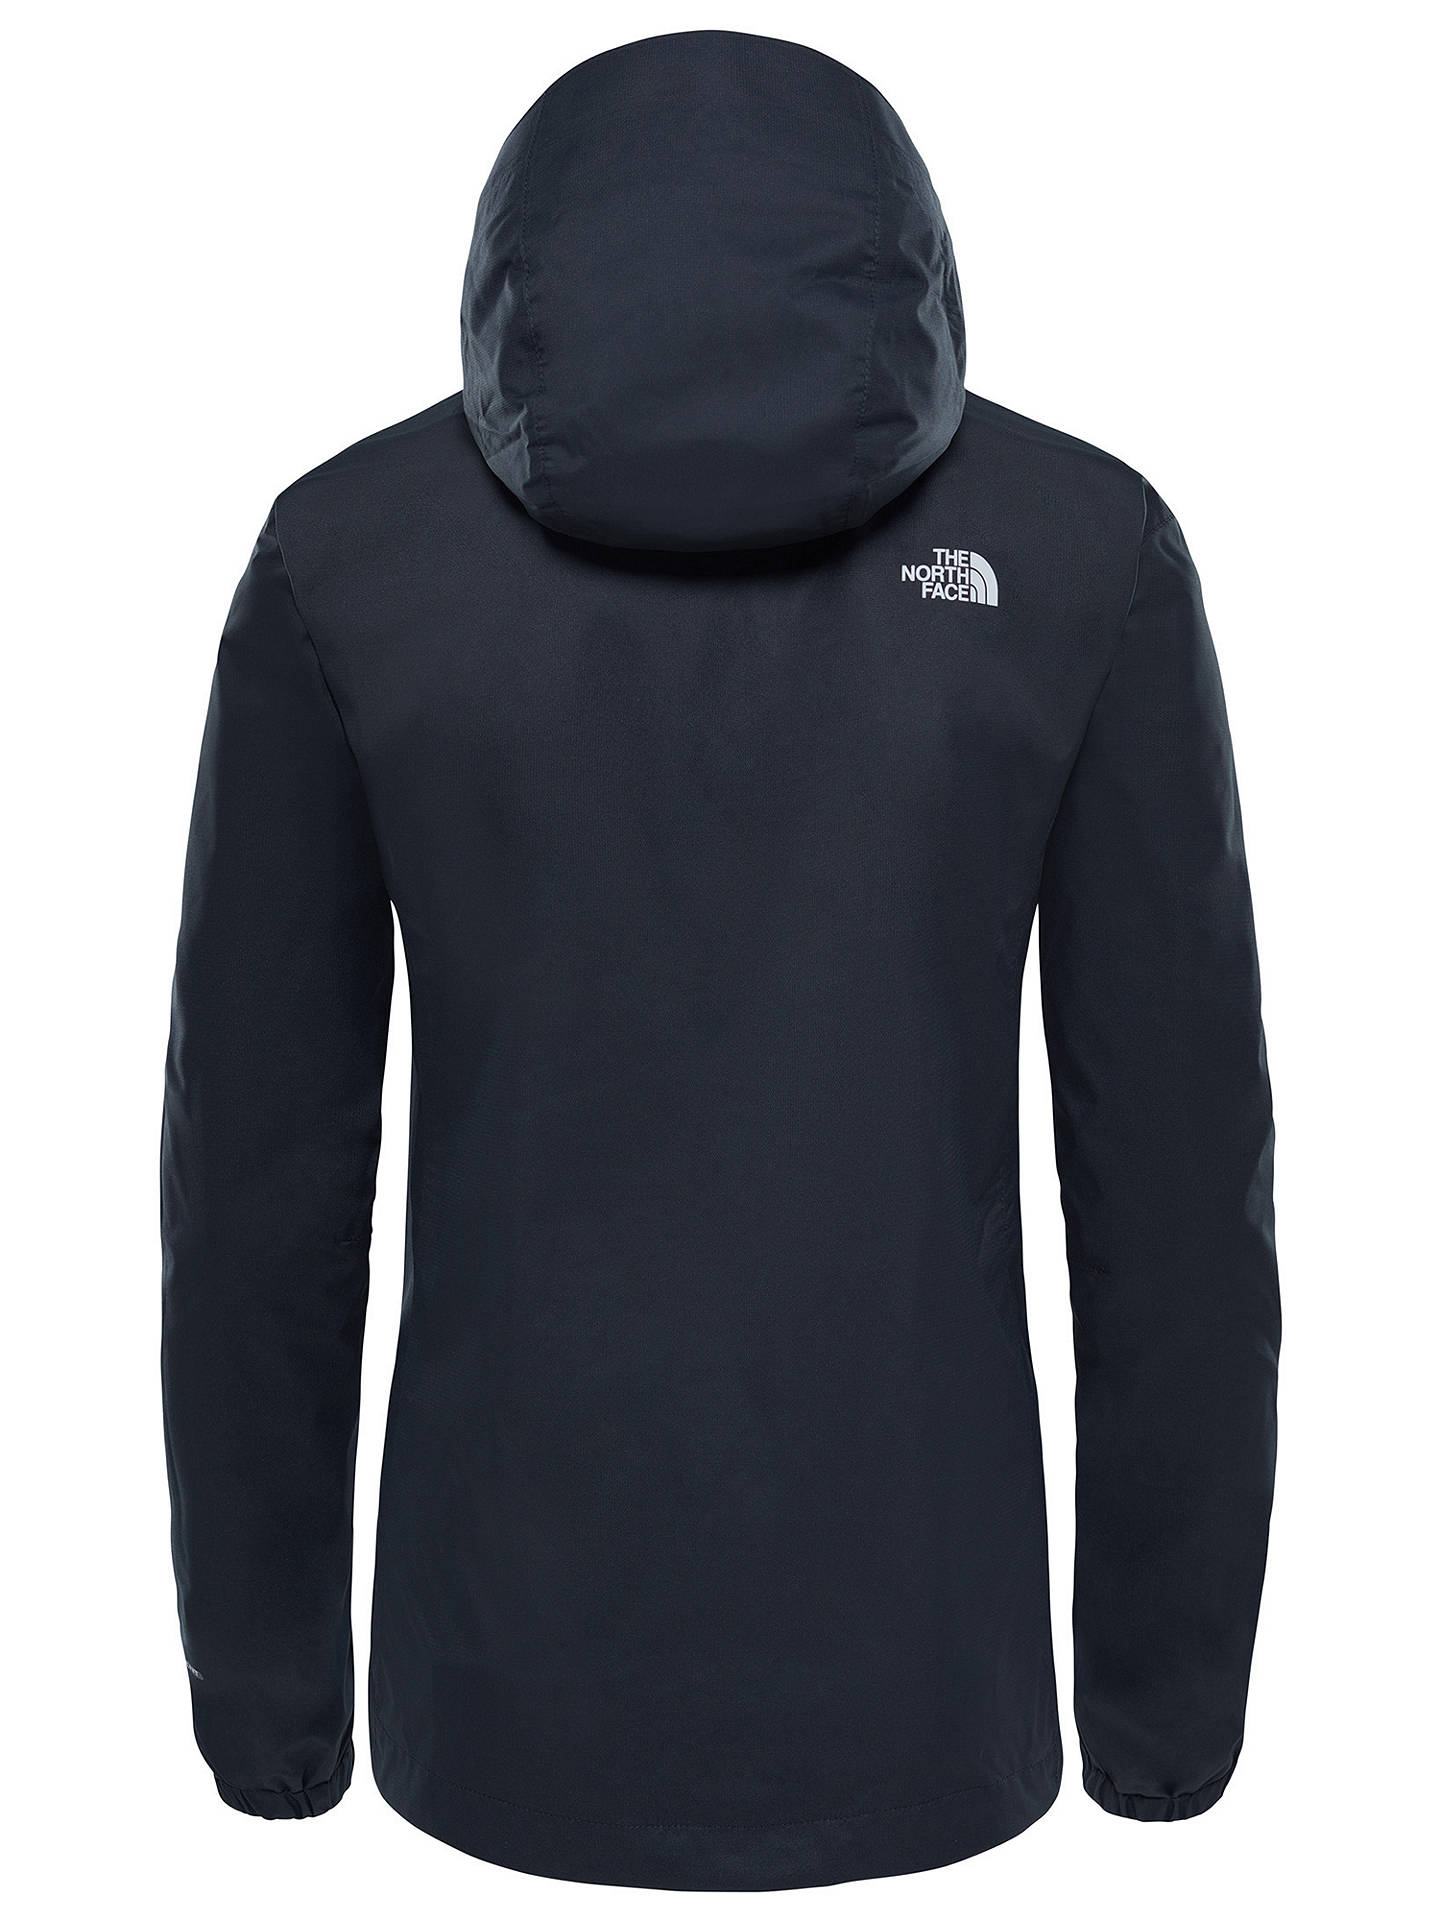 Buy The North Face Quest Women's Waterproof Jacket, Black, S Online at johnlewis.com